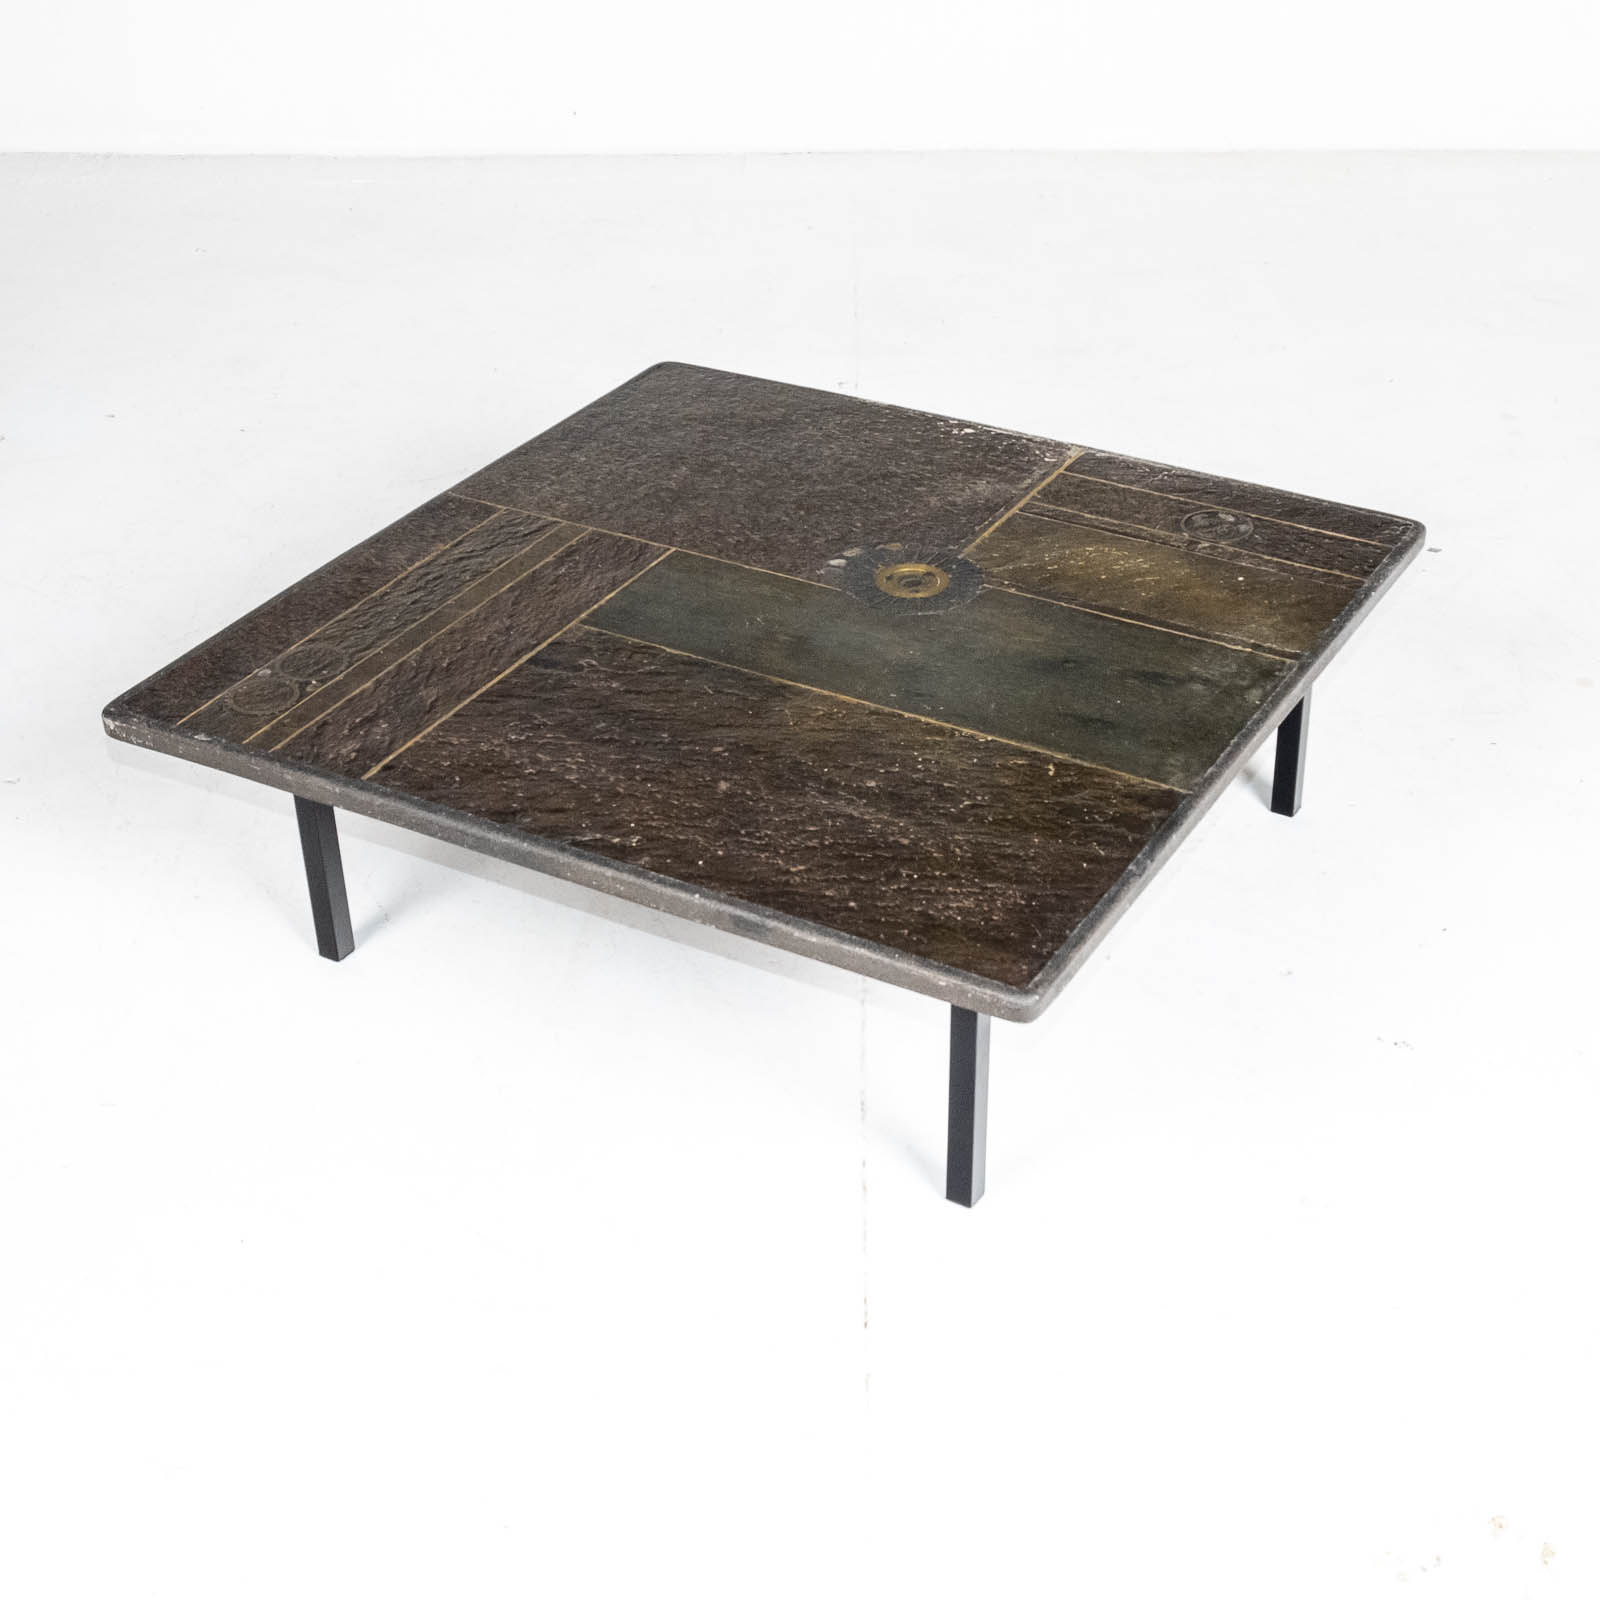 Square Coffee Table By Paul Kingma In Stone, Slate And Brass, 1970s, The Netherlands 00001